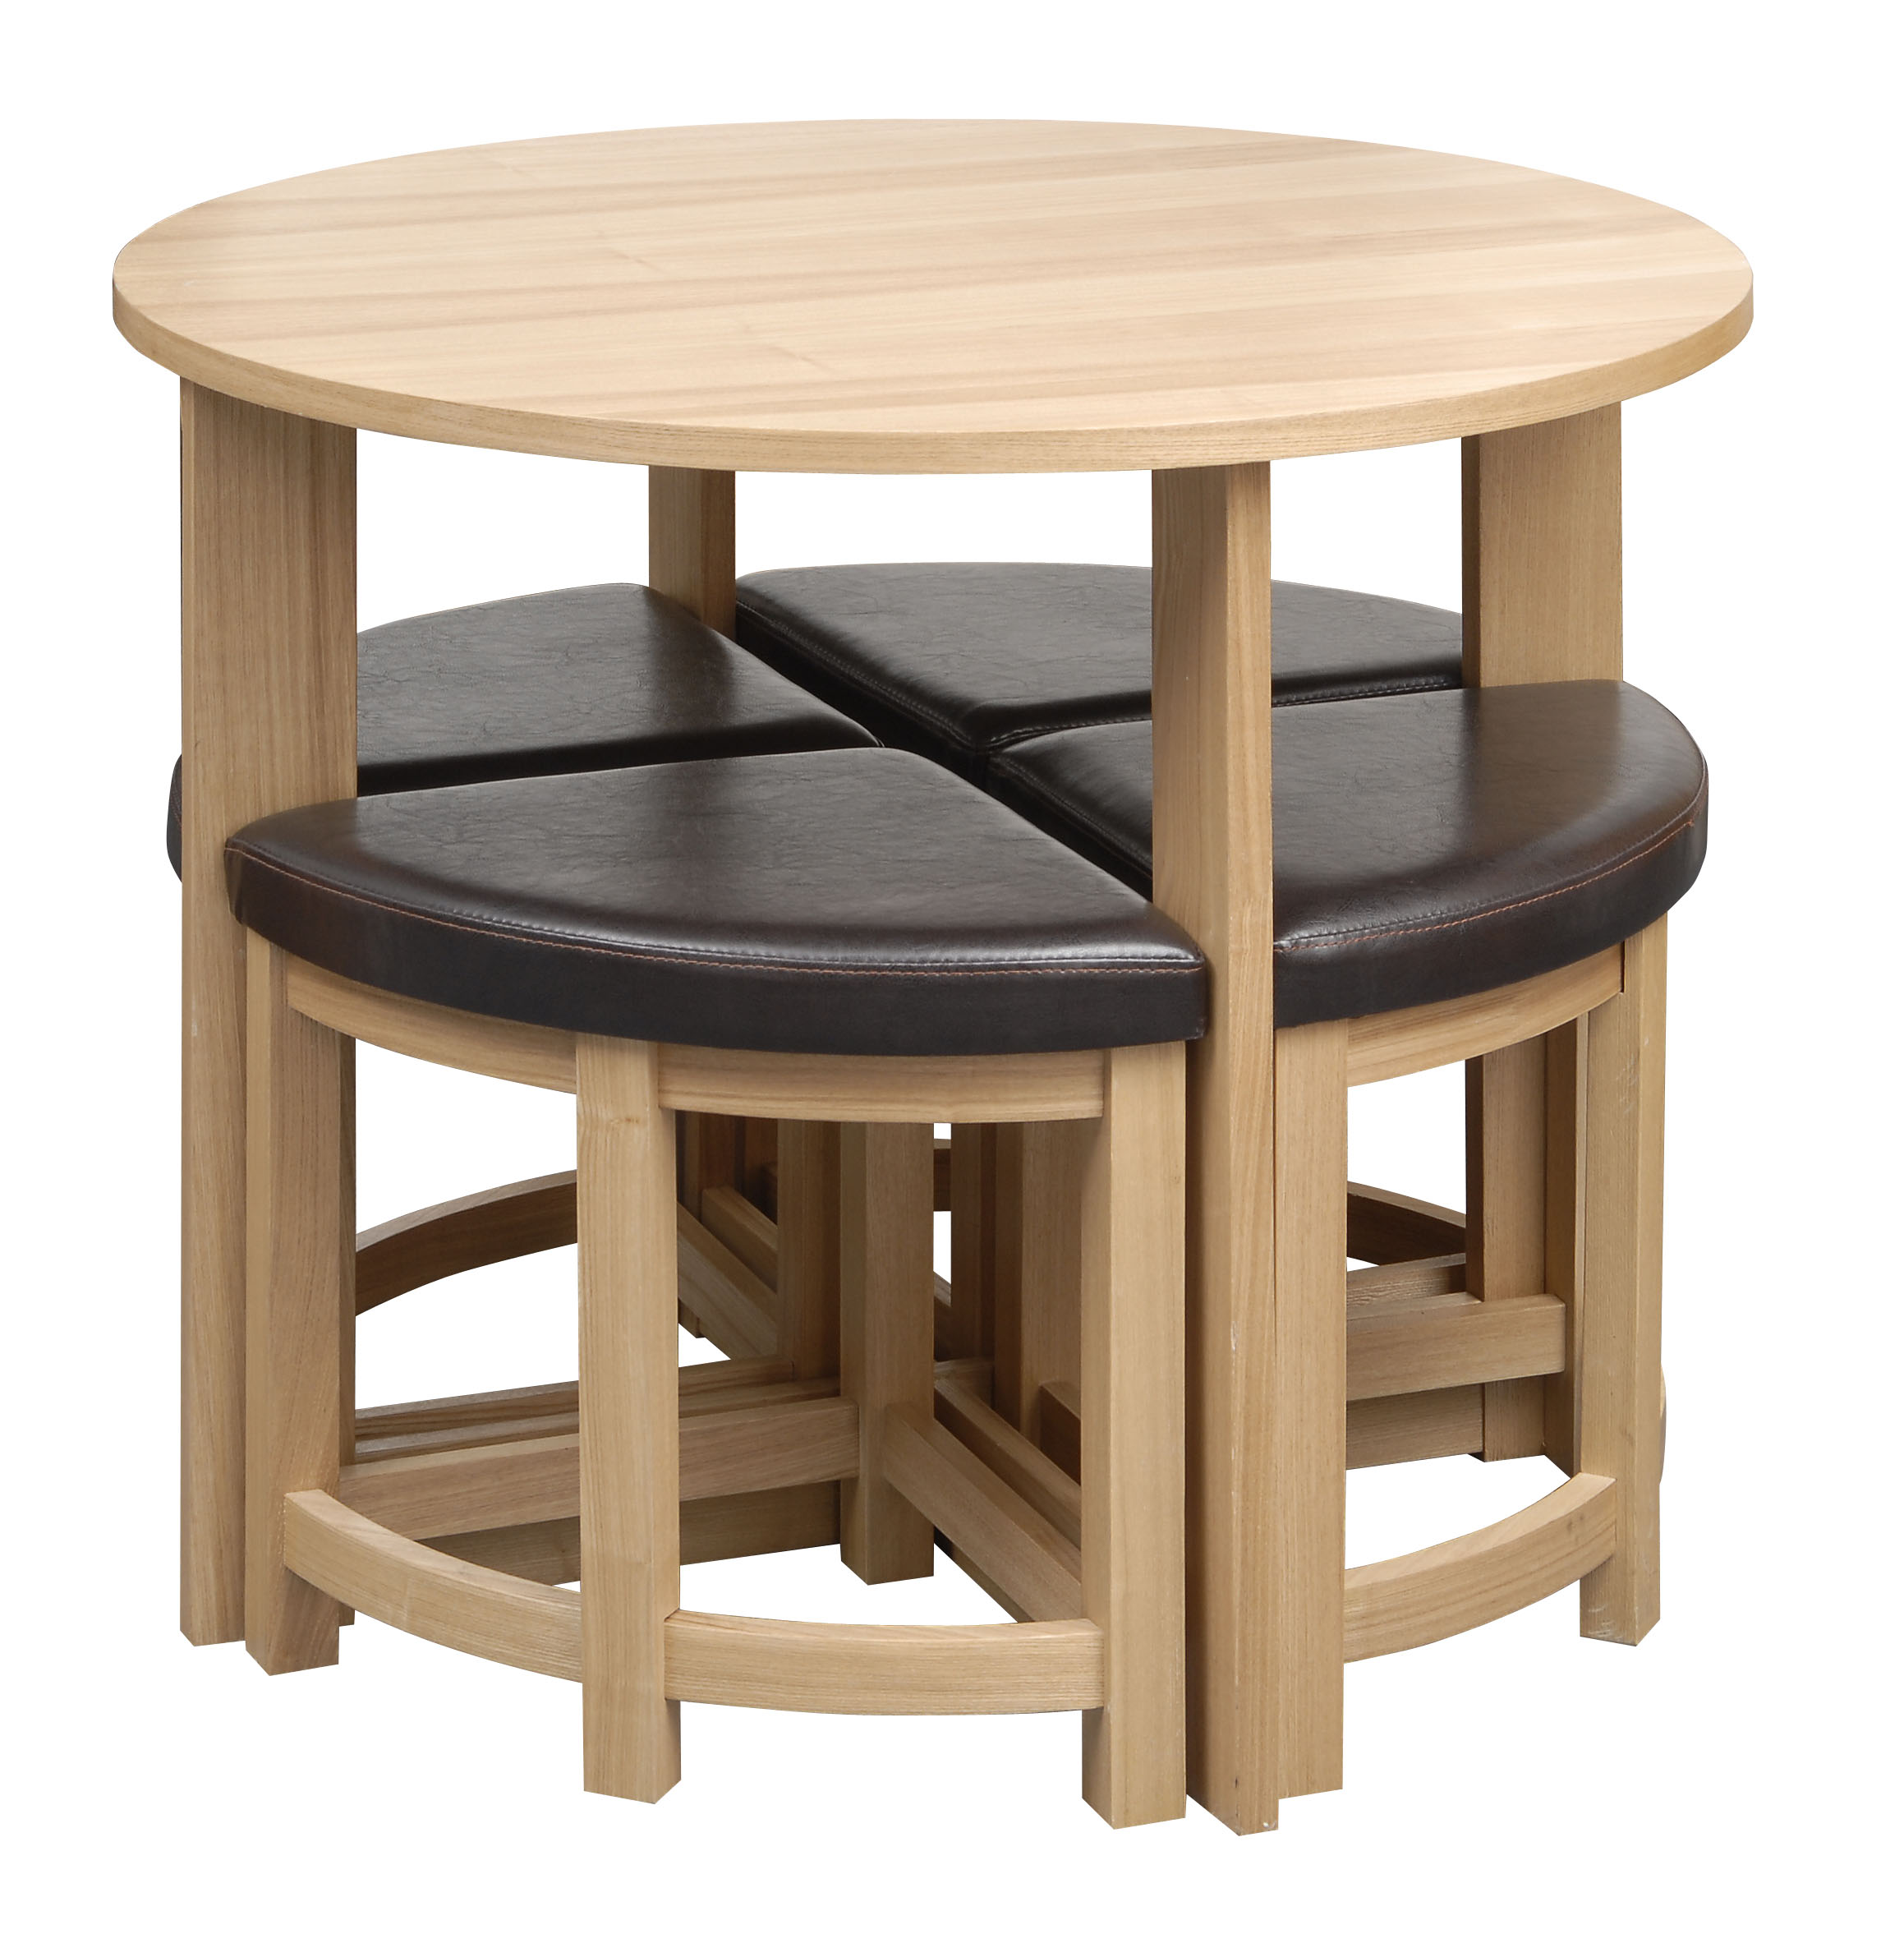 Dining Table Set Round Oak Effect 4 Seater Brown Padded Dining Chairs Stowaway Ebay